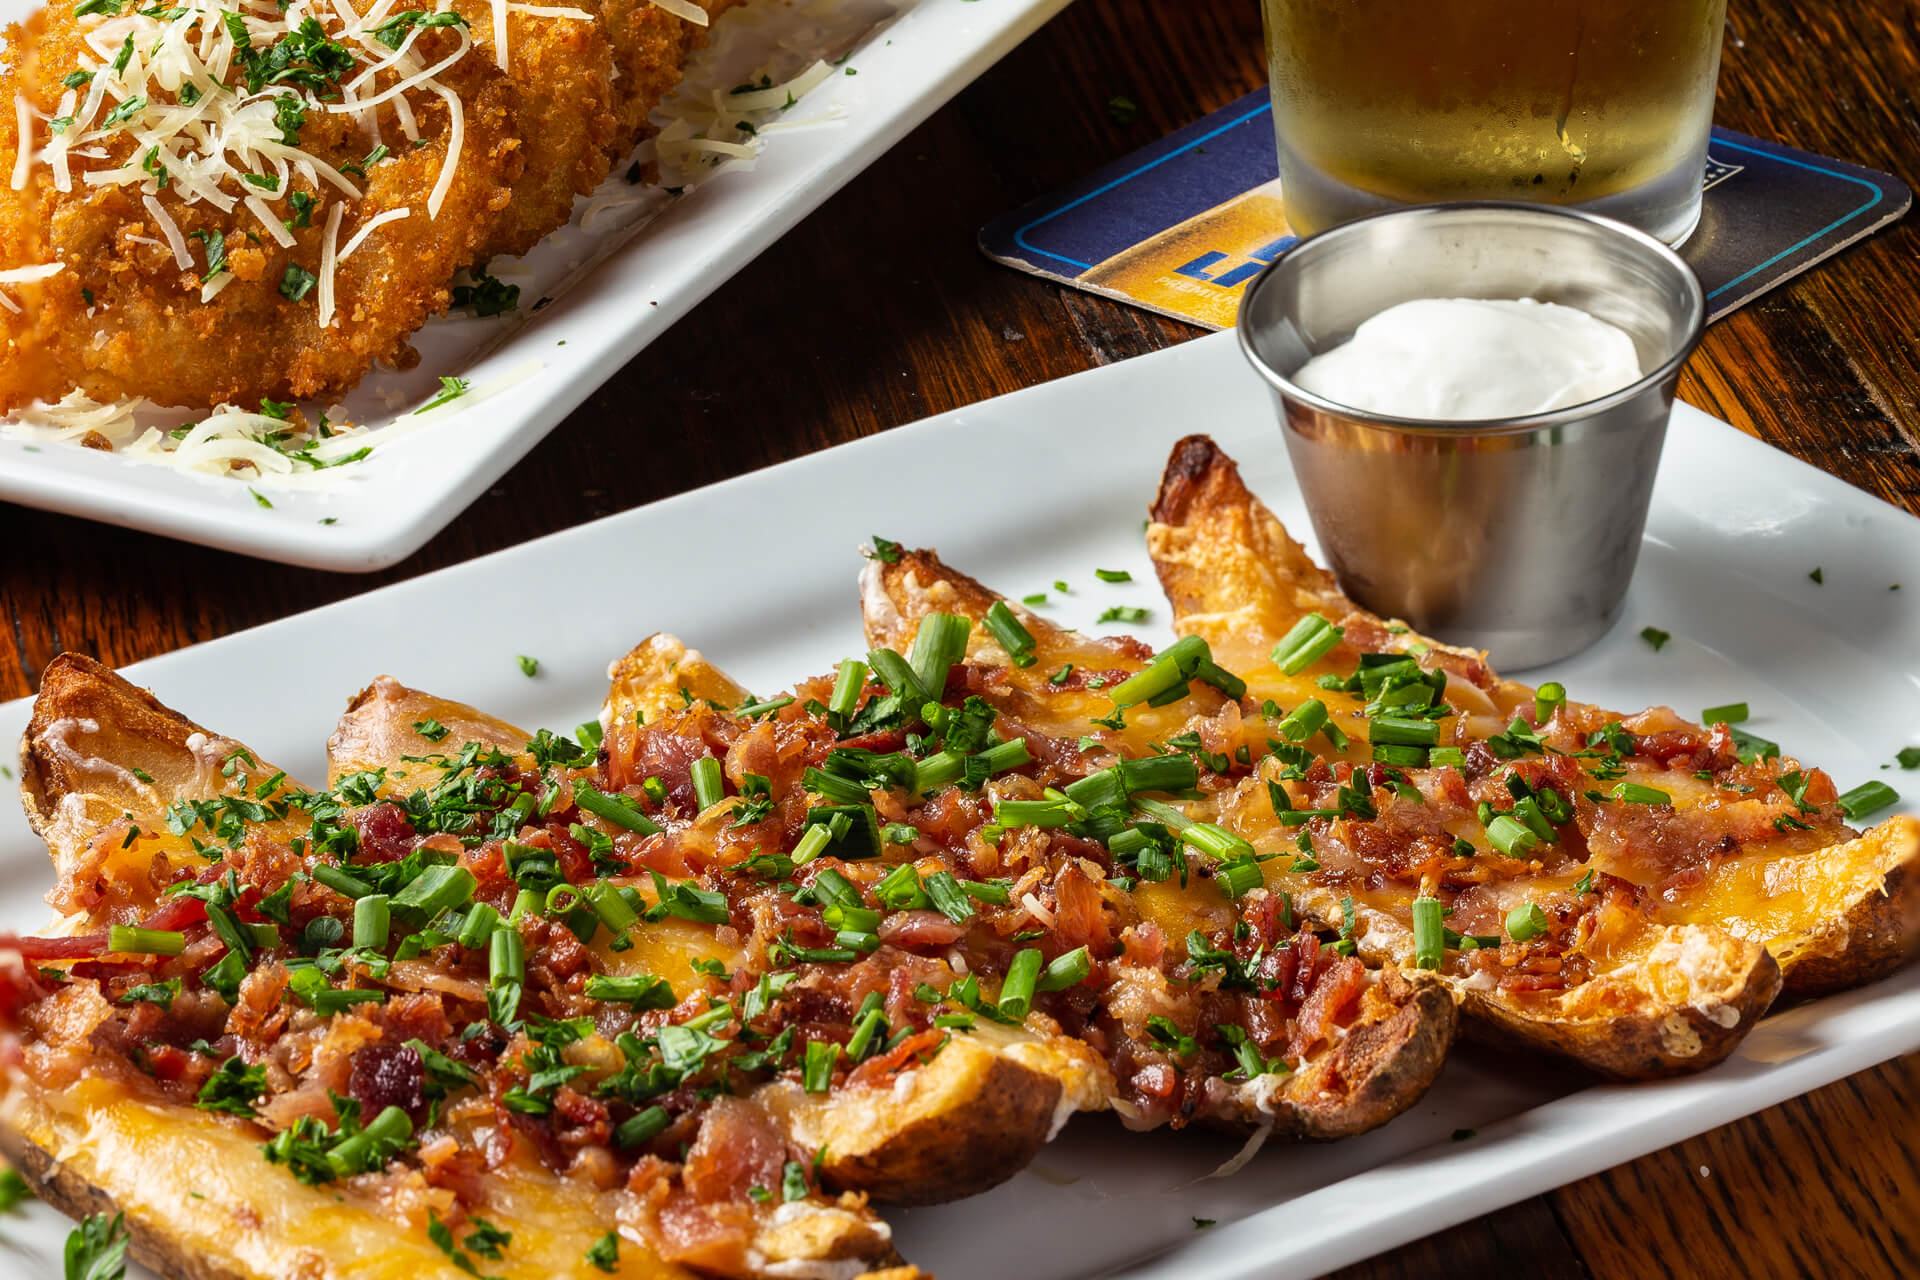 HAPPY HOUR: WEEKDAYS 4-7PM - 1/2 Off Select AppetizersAll Buckhead Mountain Grill Locations$1-Off Domestic Bottles & Pints, Well Cocktails, and Select WinesLouisville and Bellevue Locations Only